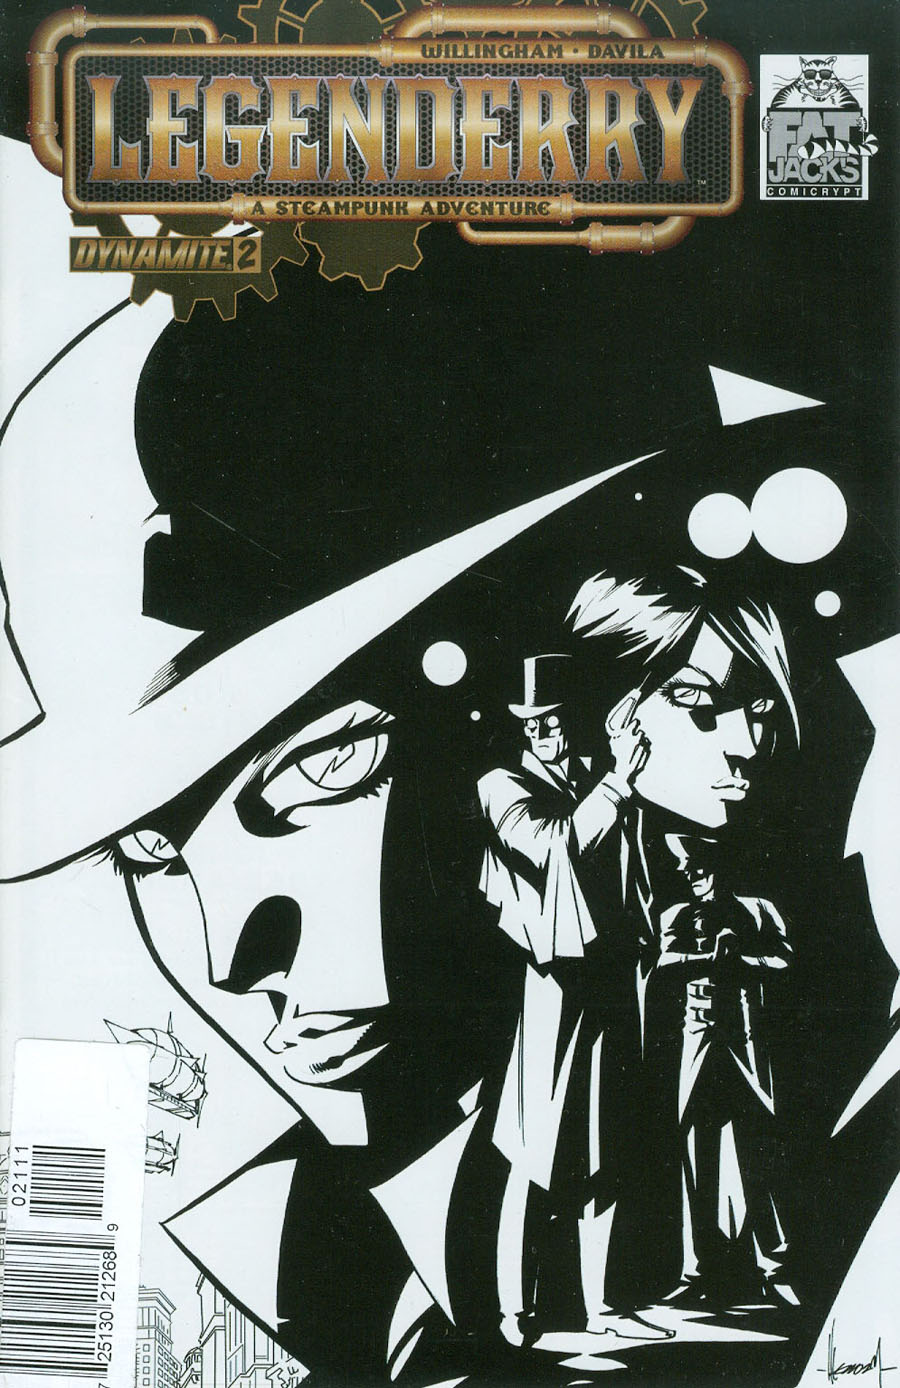 Legenderry A Steampunk Adventure #2 Cover G DF Fat Jacks Limited Edition Black & White Variant Cover